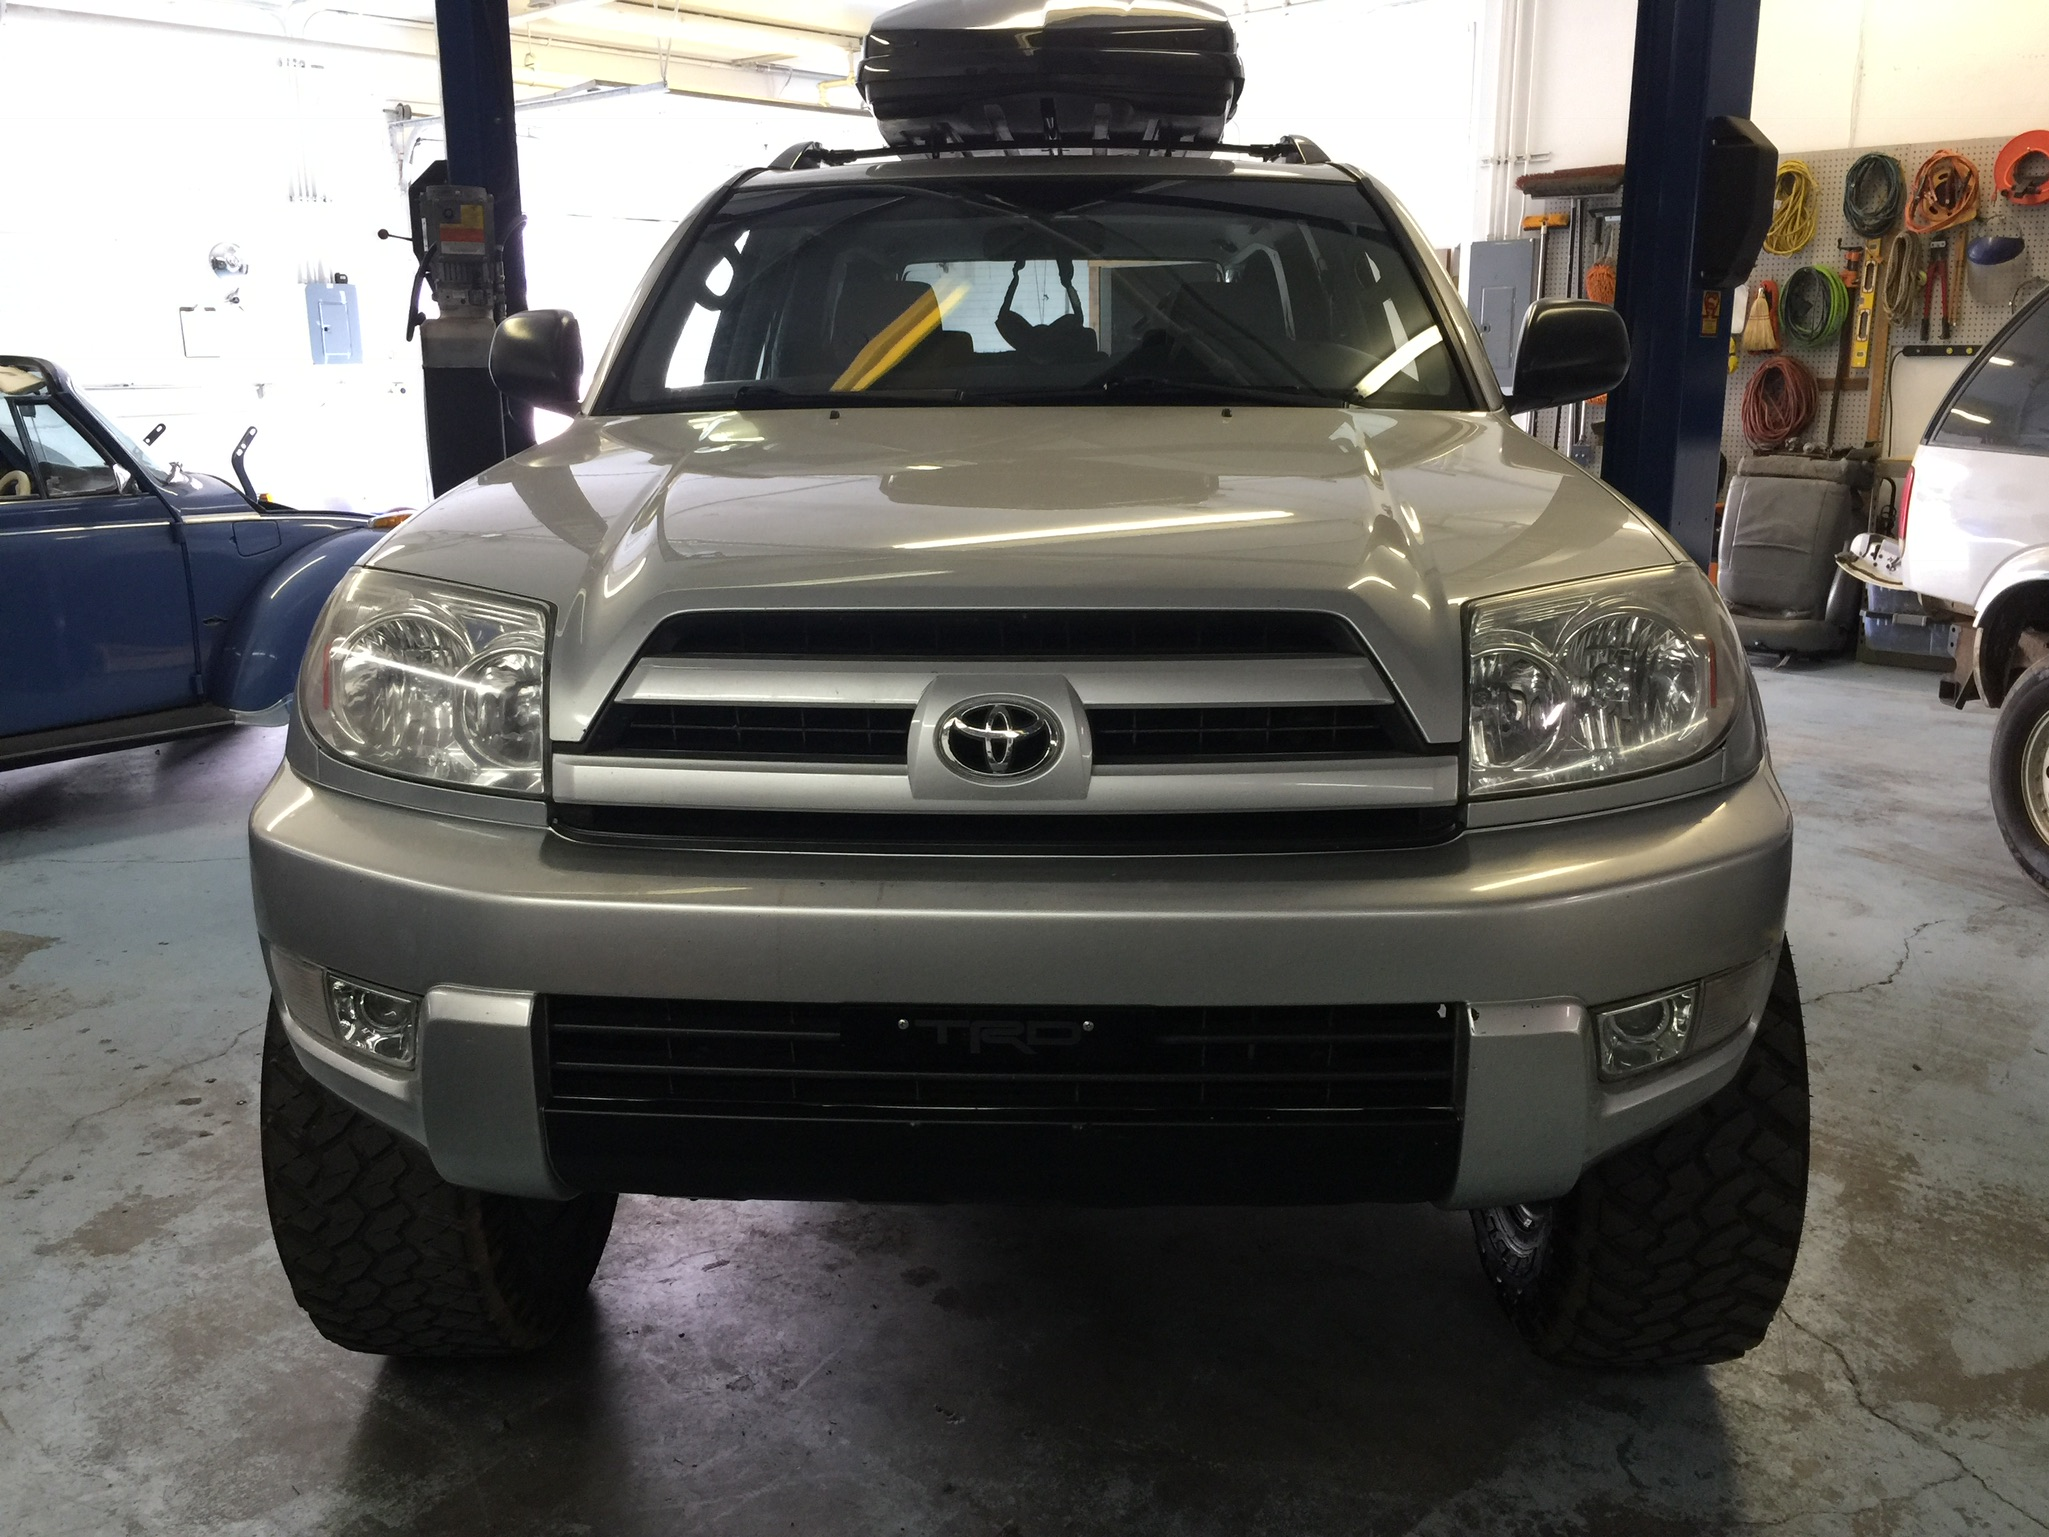 GalleryGarage20034Runner.JPG